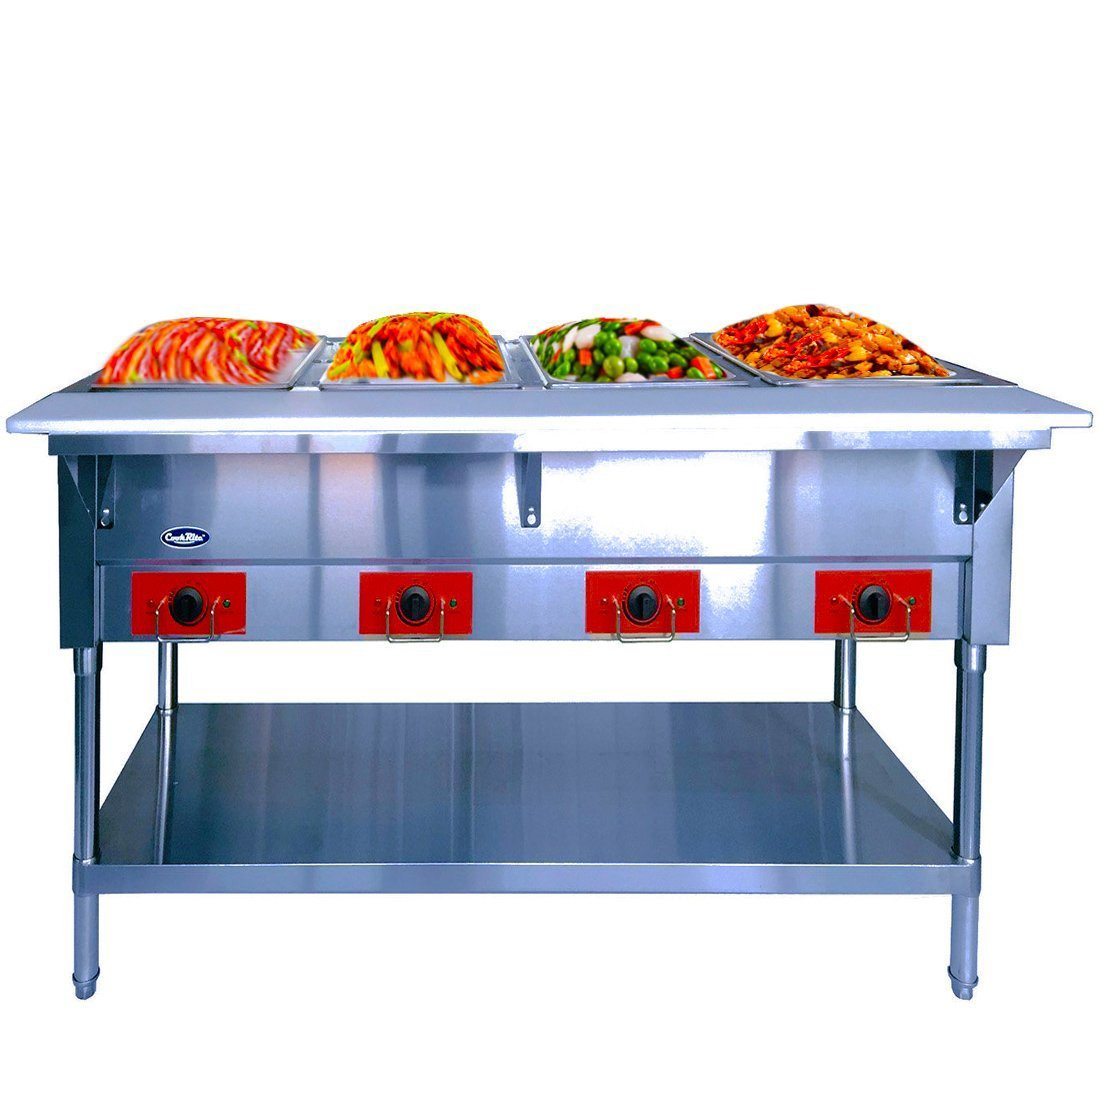 Commercial Electric Steam Table - ATOSA 240V Stainless Steel Food Warmer with Undershelf, Hot Food Buffet Table for Restaurant Kitchen - 4 Open Well